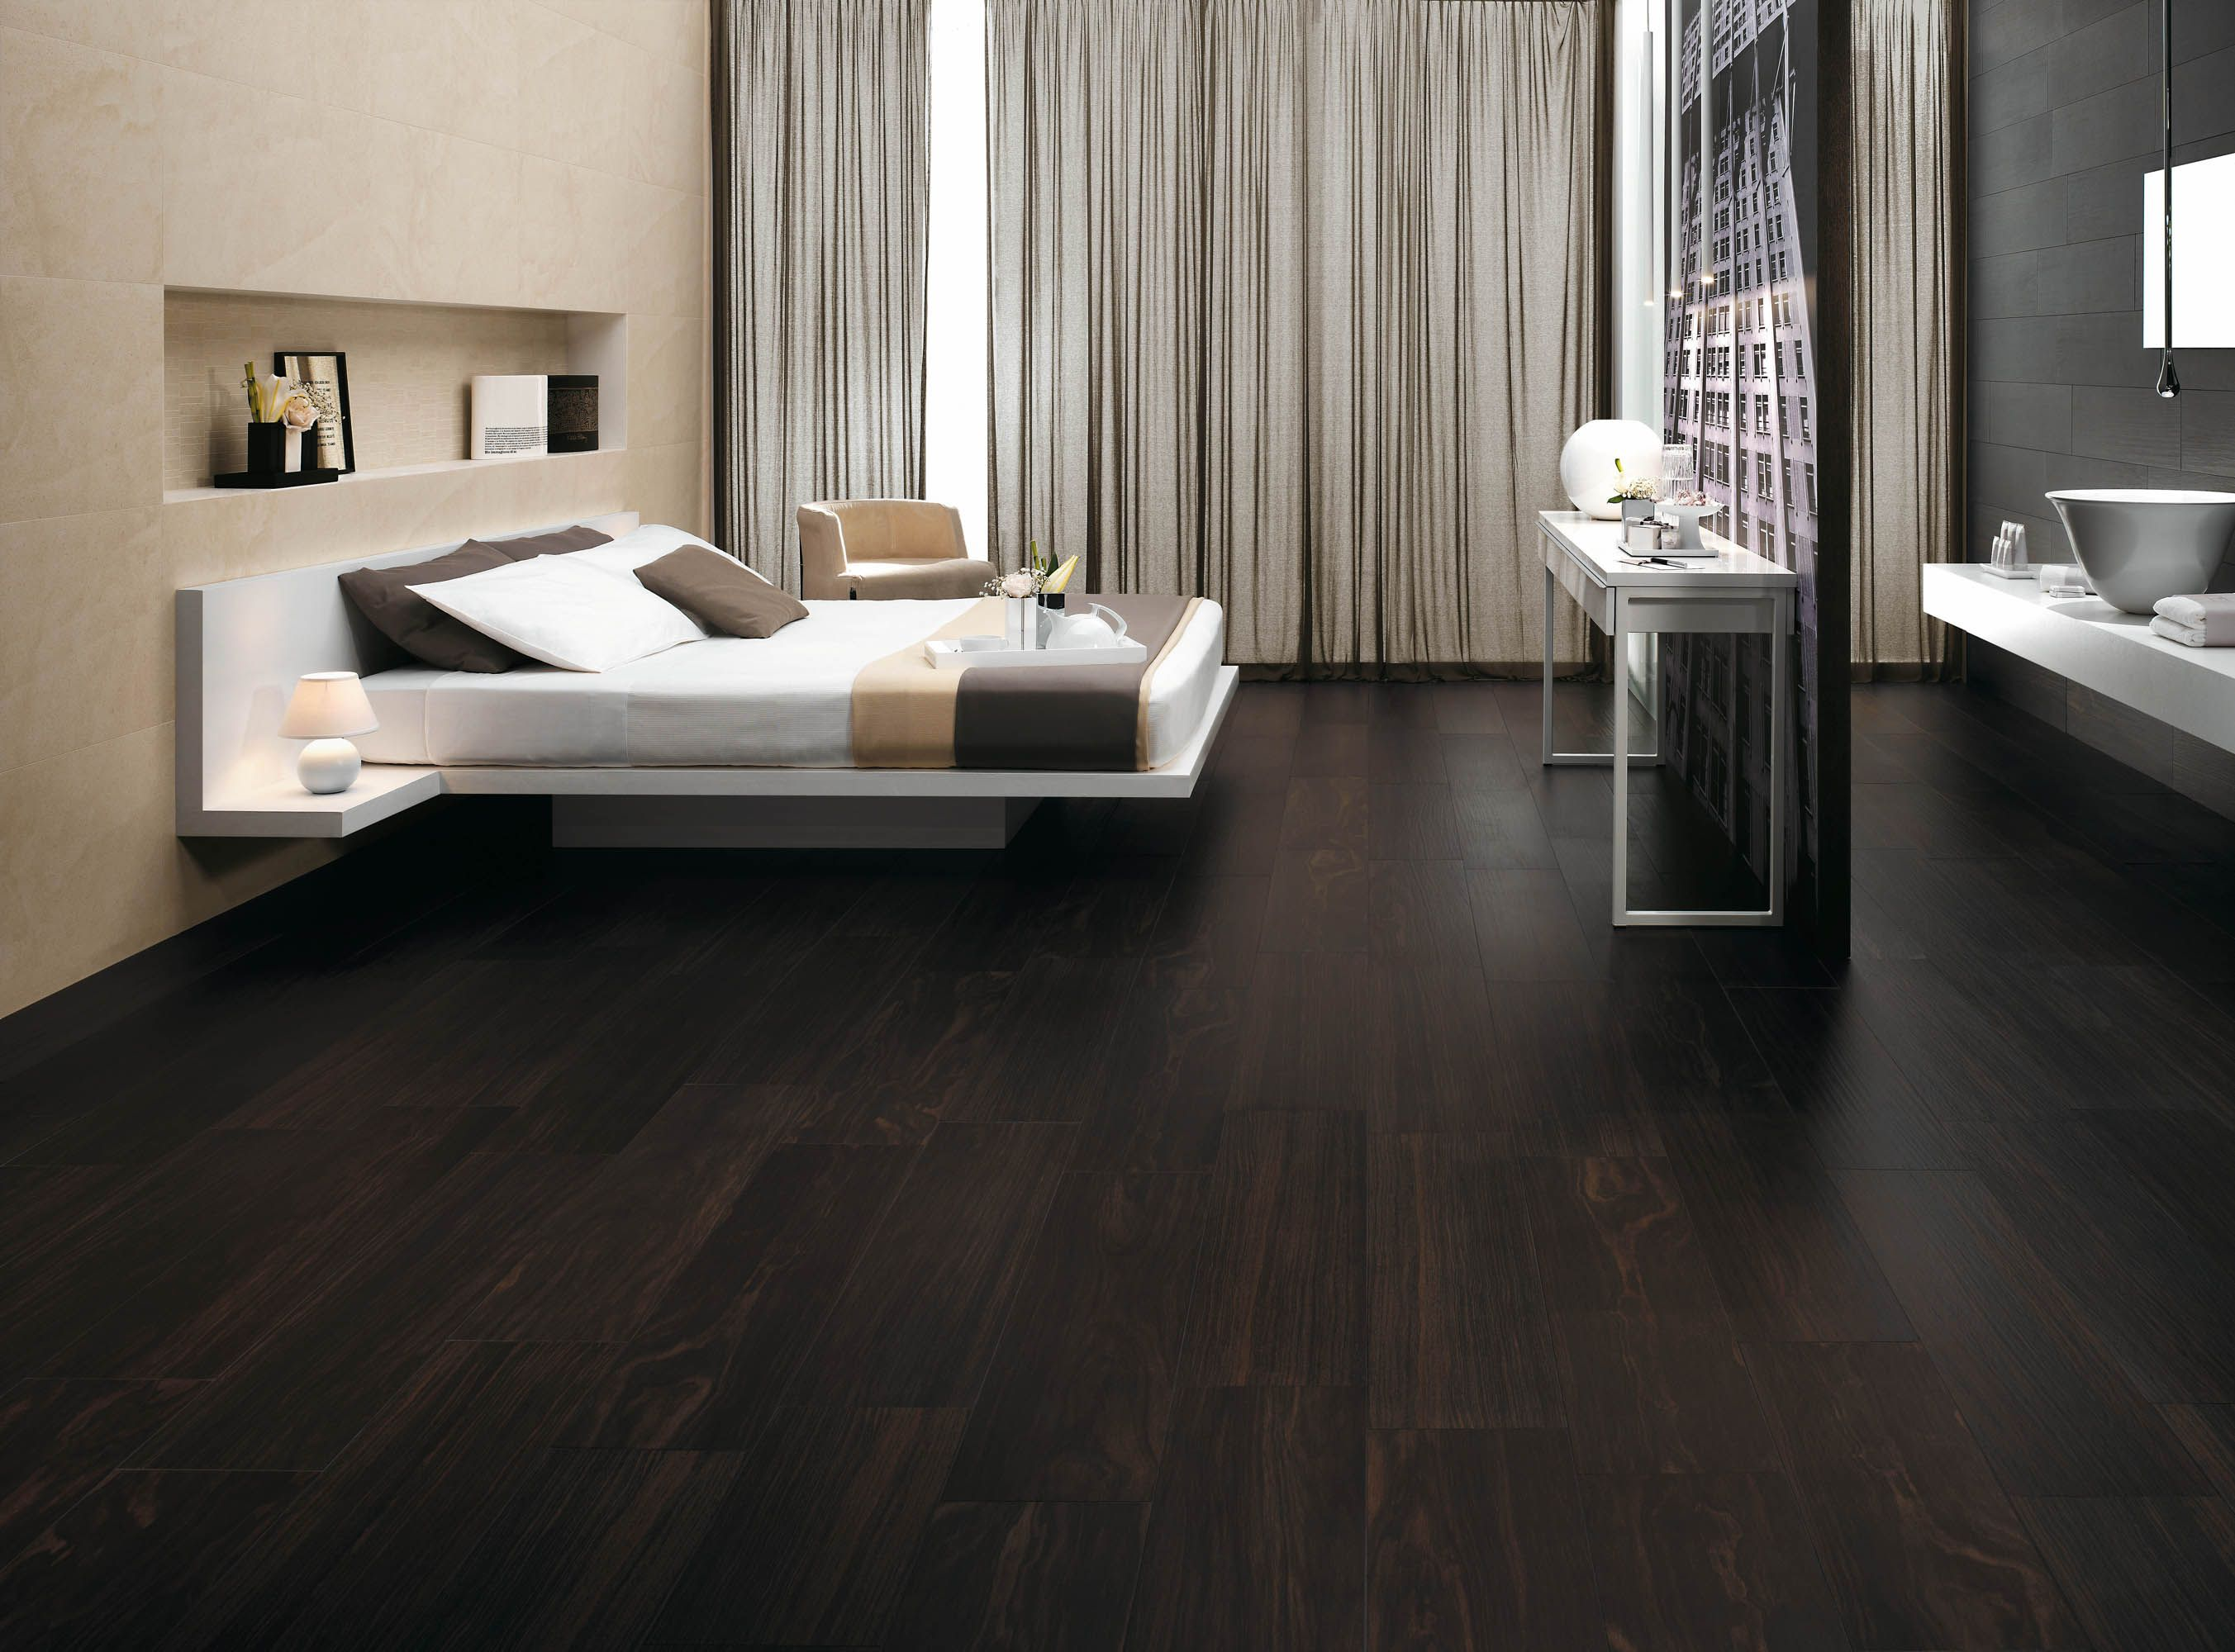 Minoli tiles etic a wood look floor with all the benefits of minoli etic floor tiles etic ebano x a wood look floor with all the benefits of porcelain etic ebano by minoli is perfect solution dailygadgetfo Gallery